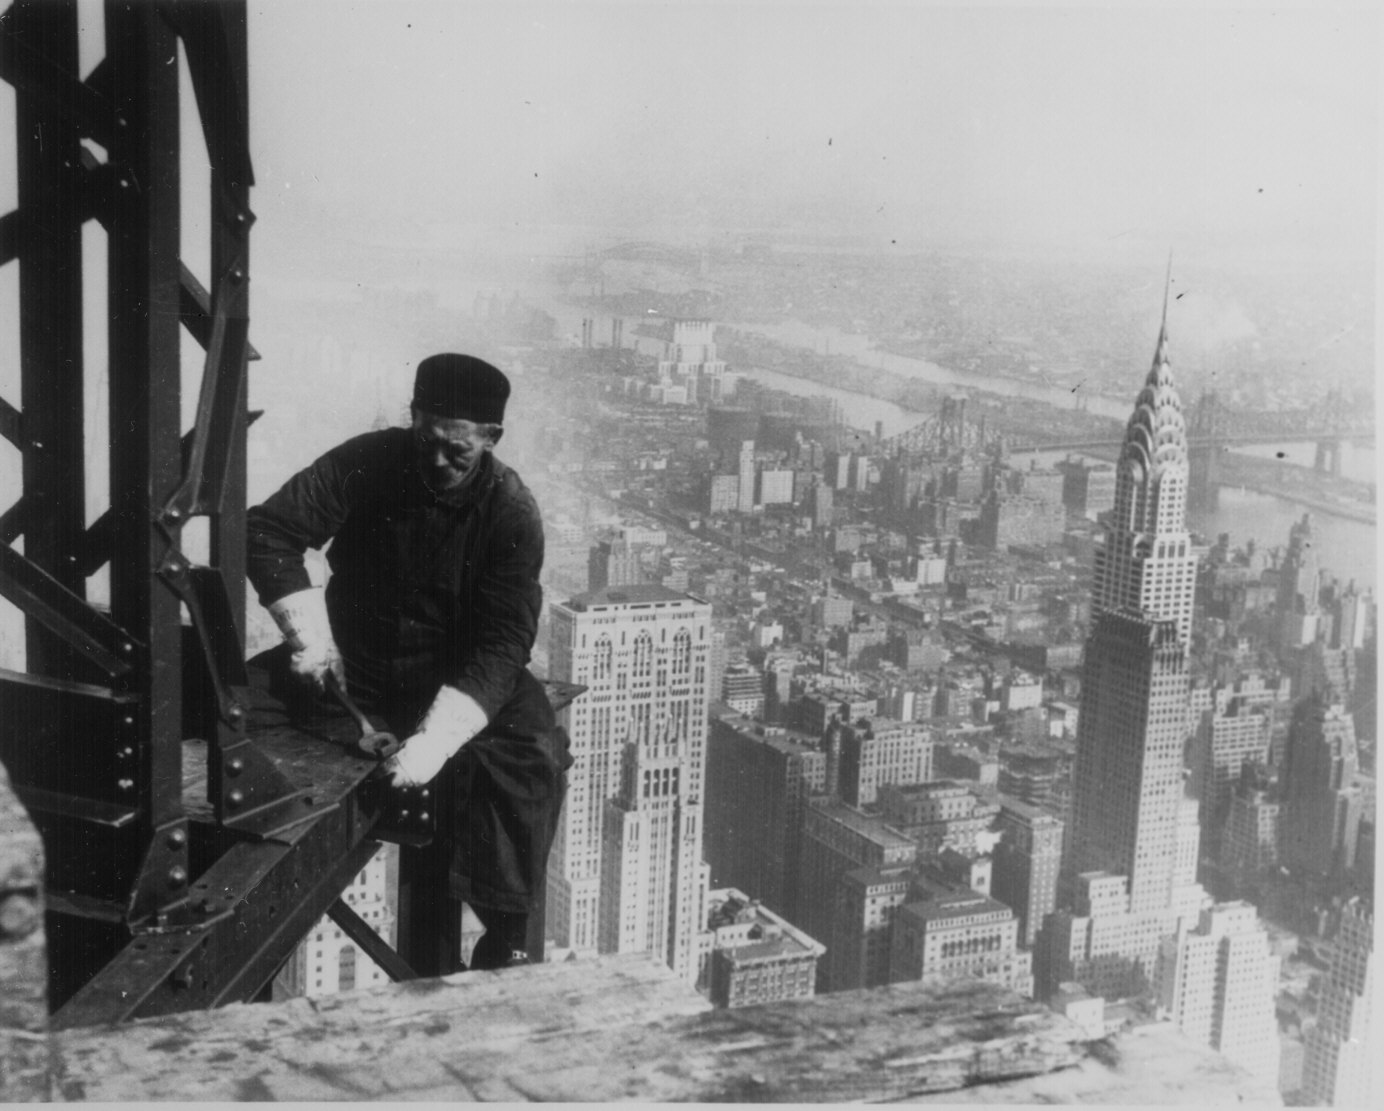 Vintage Photograph From 1930 Shows Construction Worker On